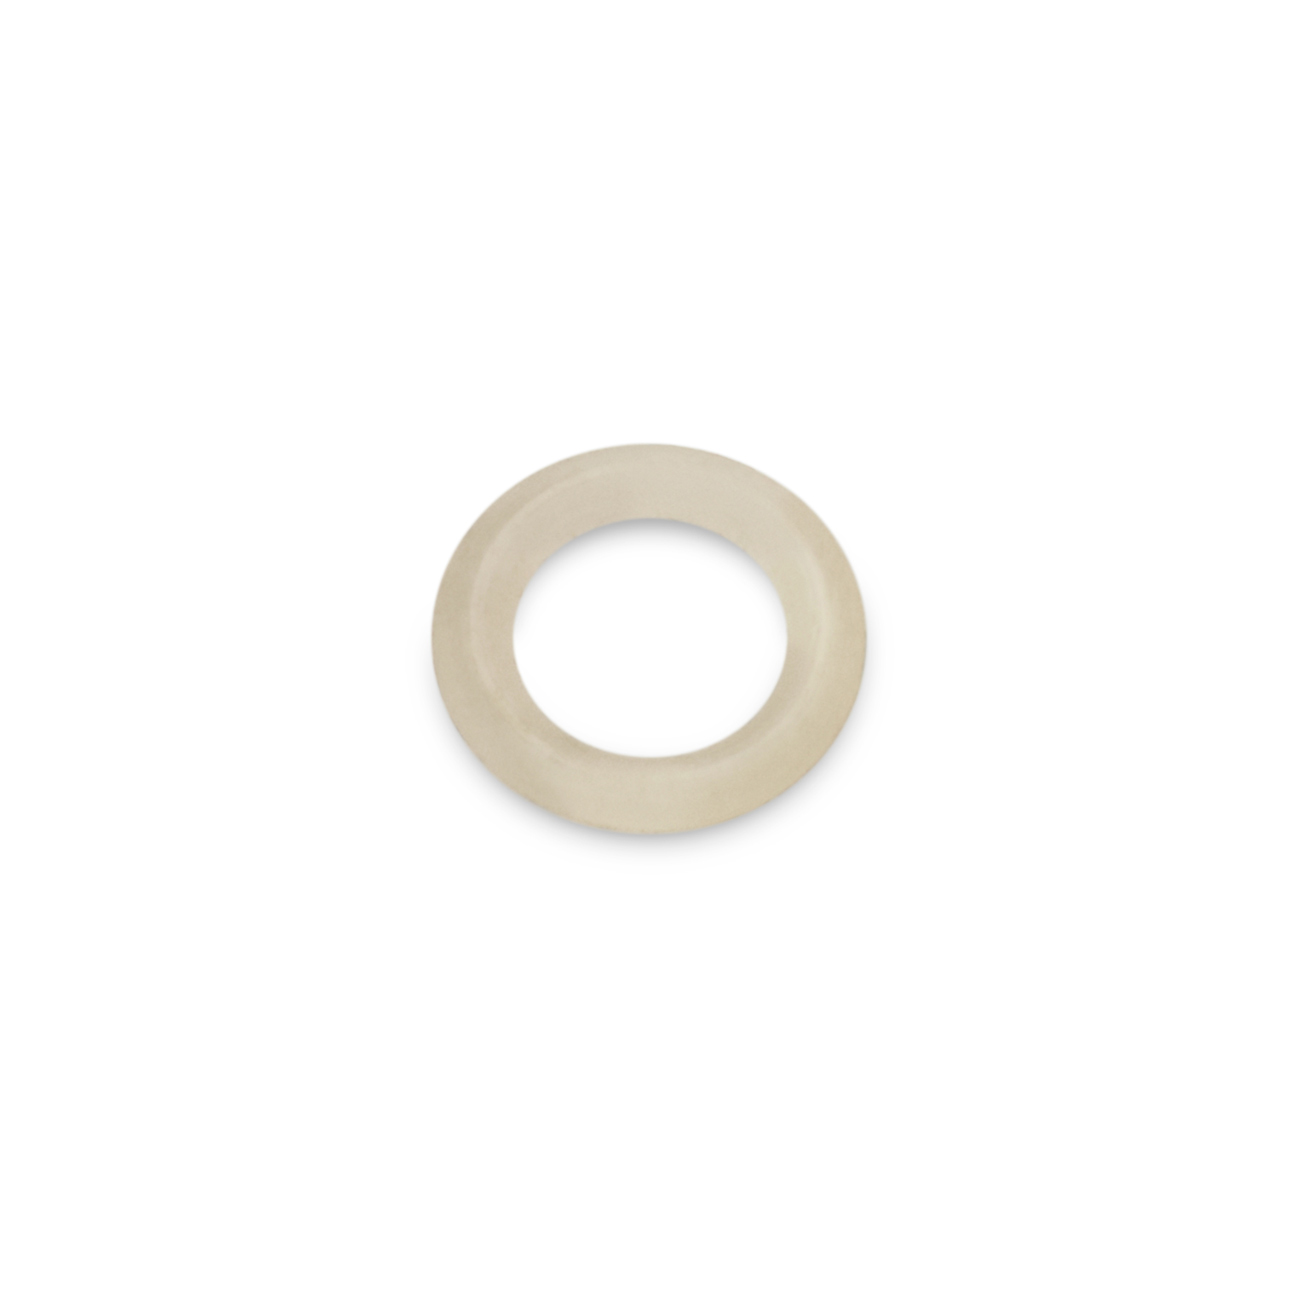 O-Ring for the Steam Wand Nozzle